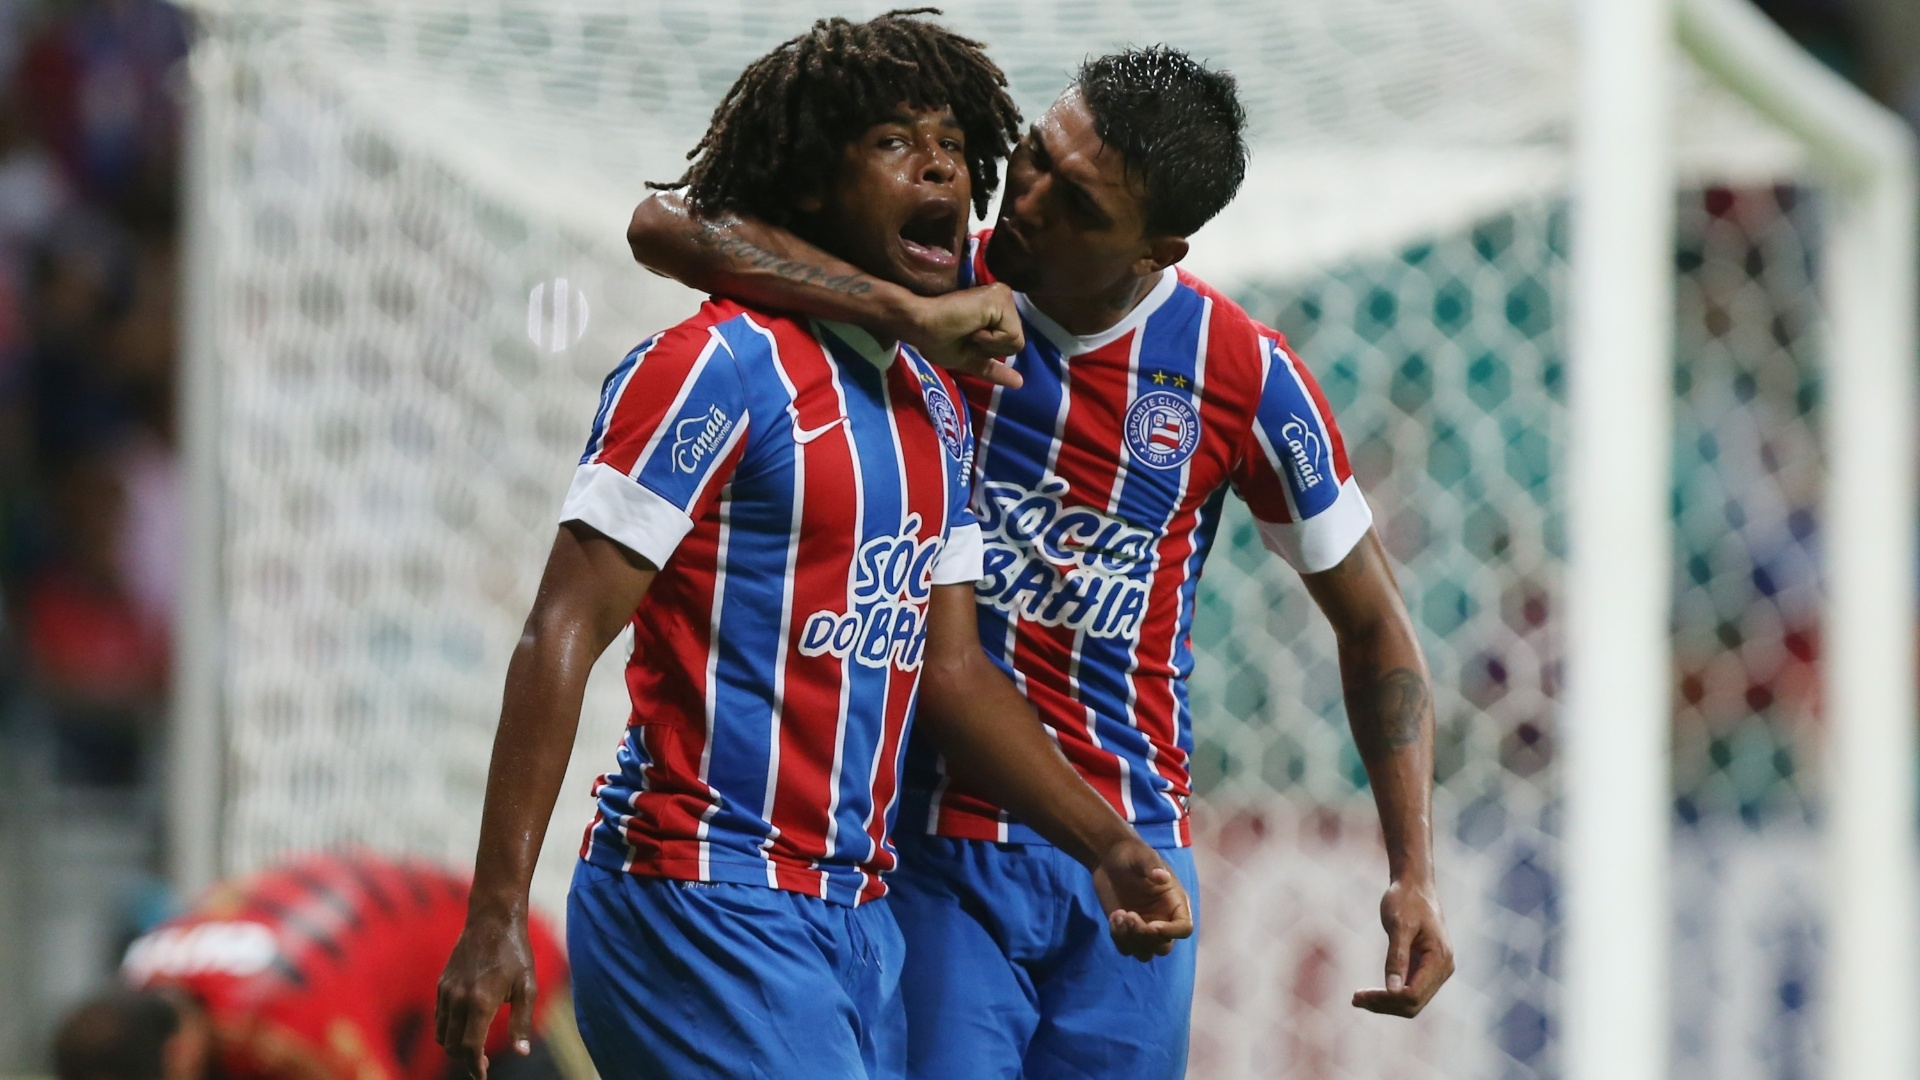 William Barbio fez a jogada que originou o gol do Bahia